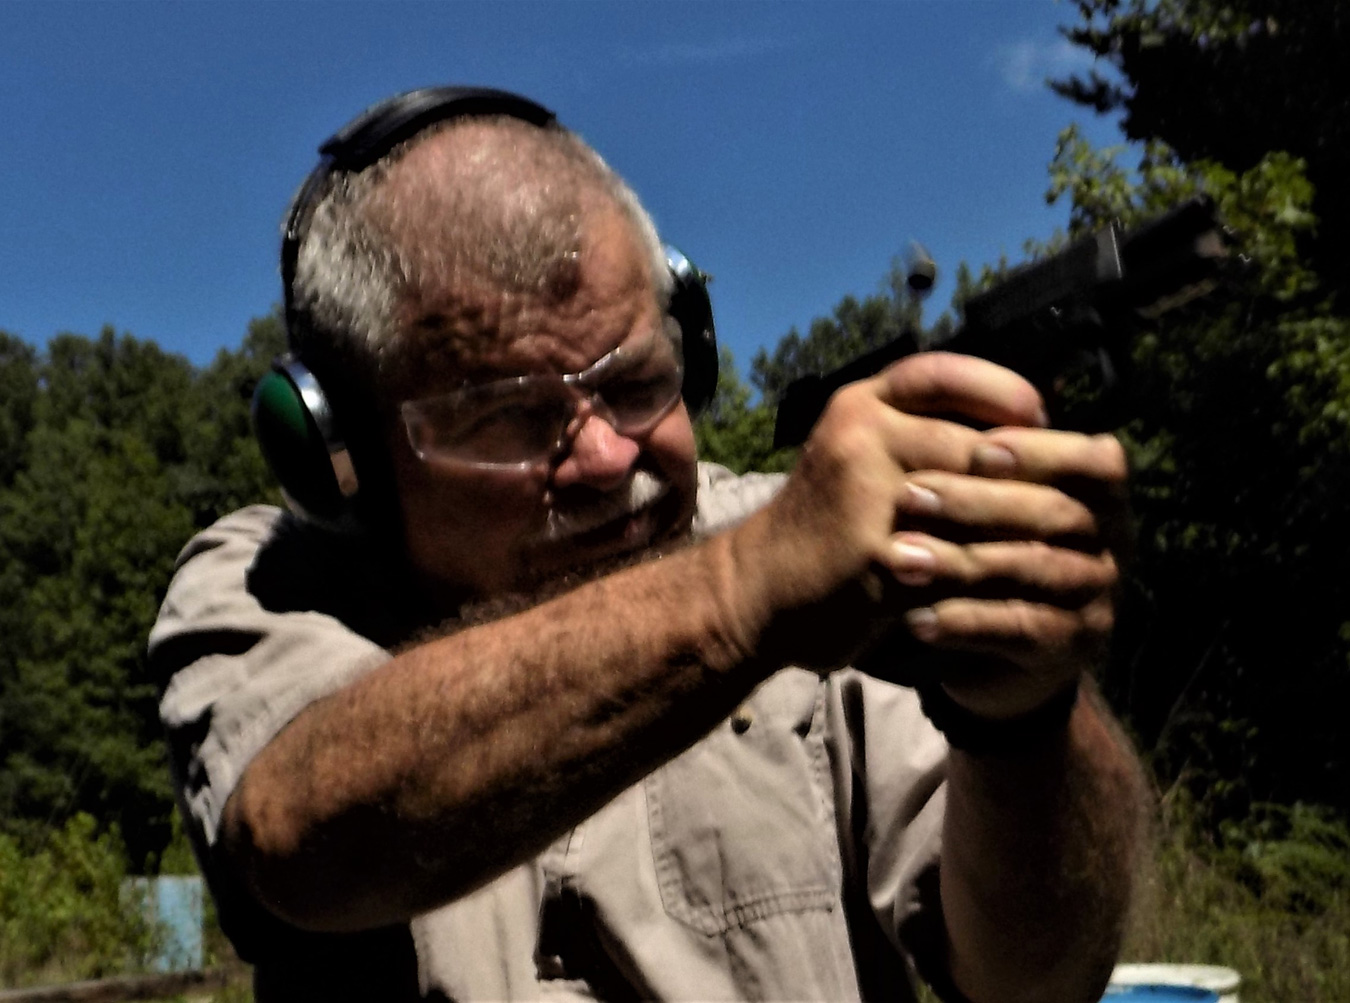 Bob Campbell shooting the FNS 40